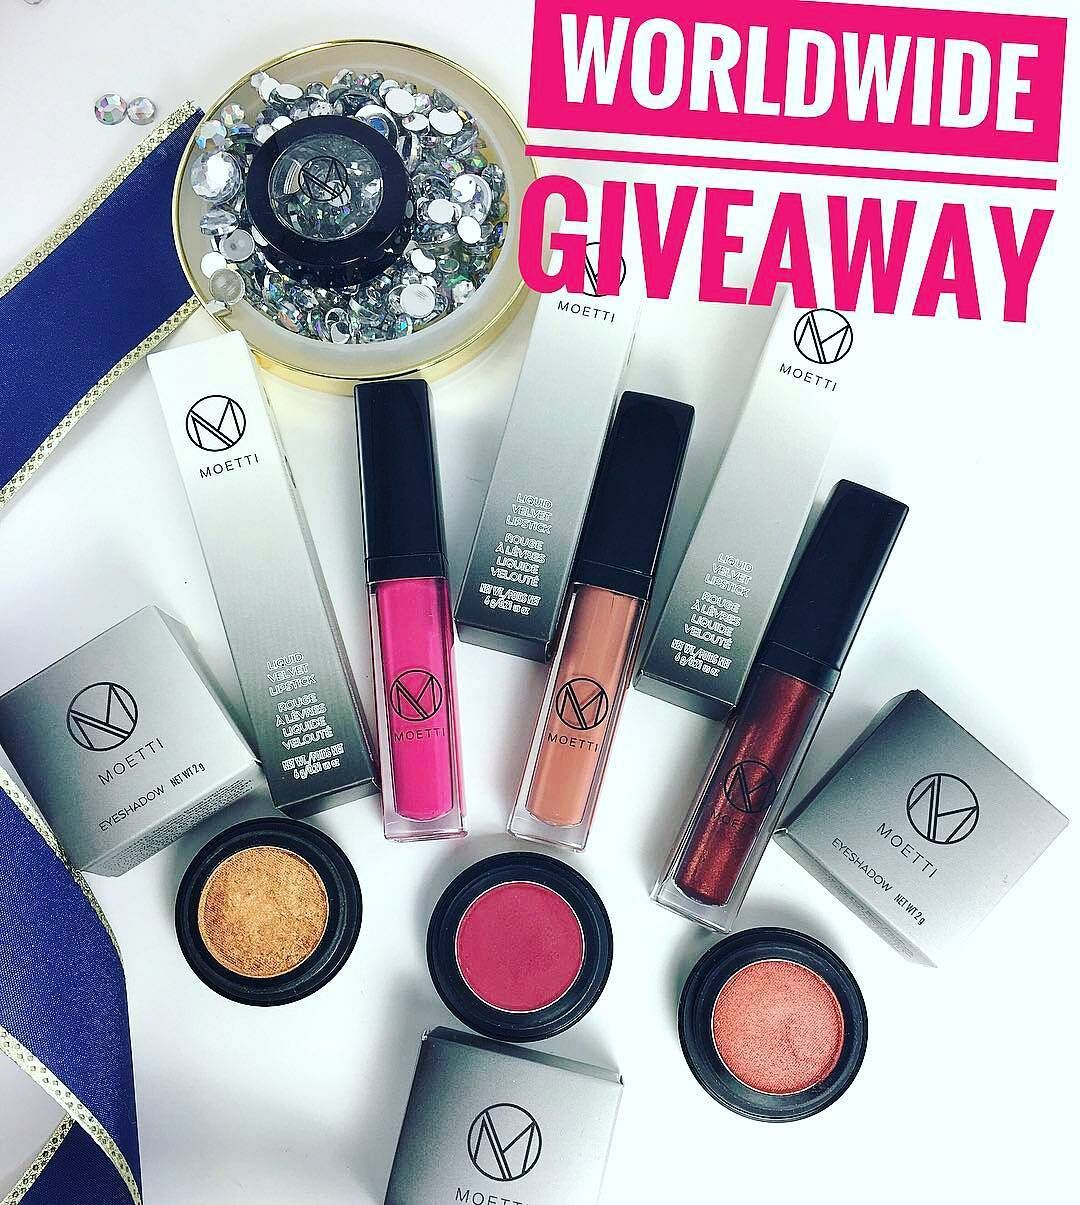 Instagram Makeup Giveaway Win A Free Moetticosmetics Beauty Prize Pack Courtesy Of Moetti Cosmetics Giveaway Giveaway Contest Eyeshadow